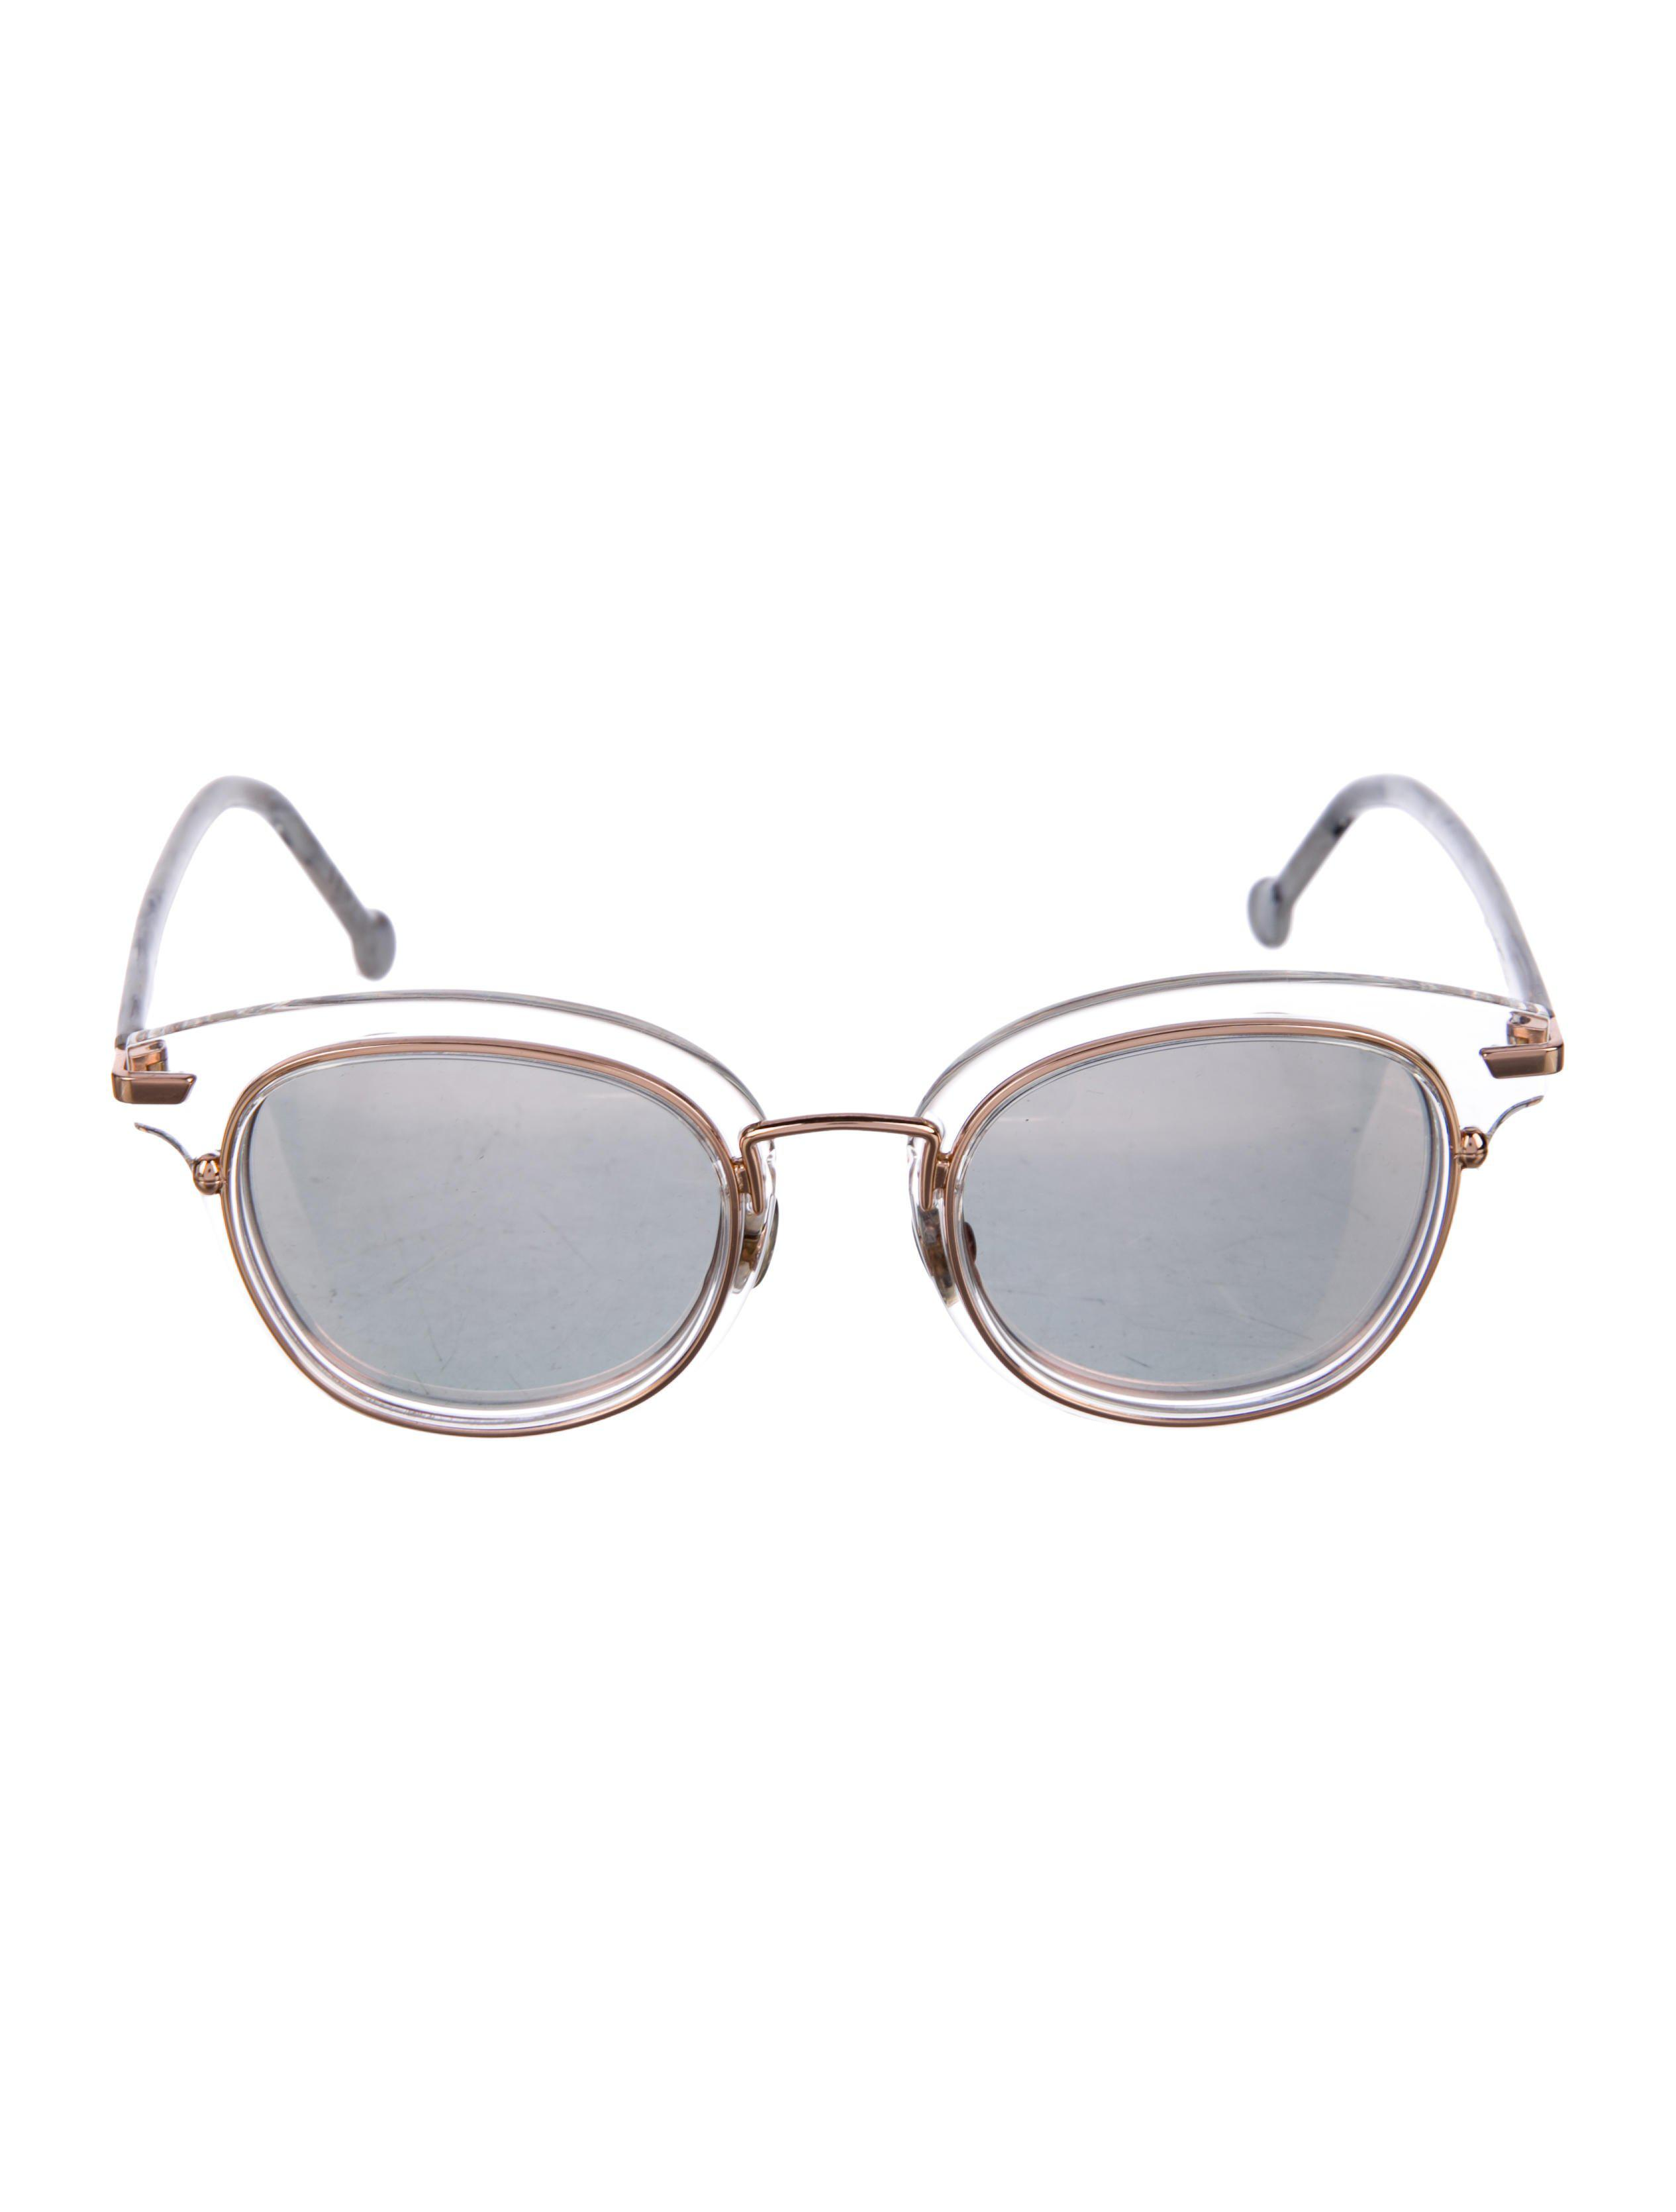 ea86887b53e Lyst - Dior Origins 2 Mirrored Sunglasses Clear in Metallic